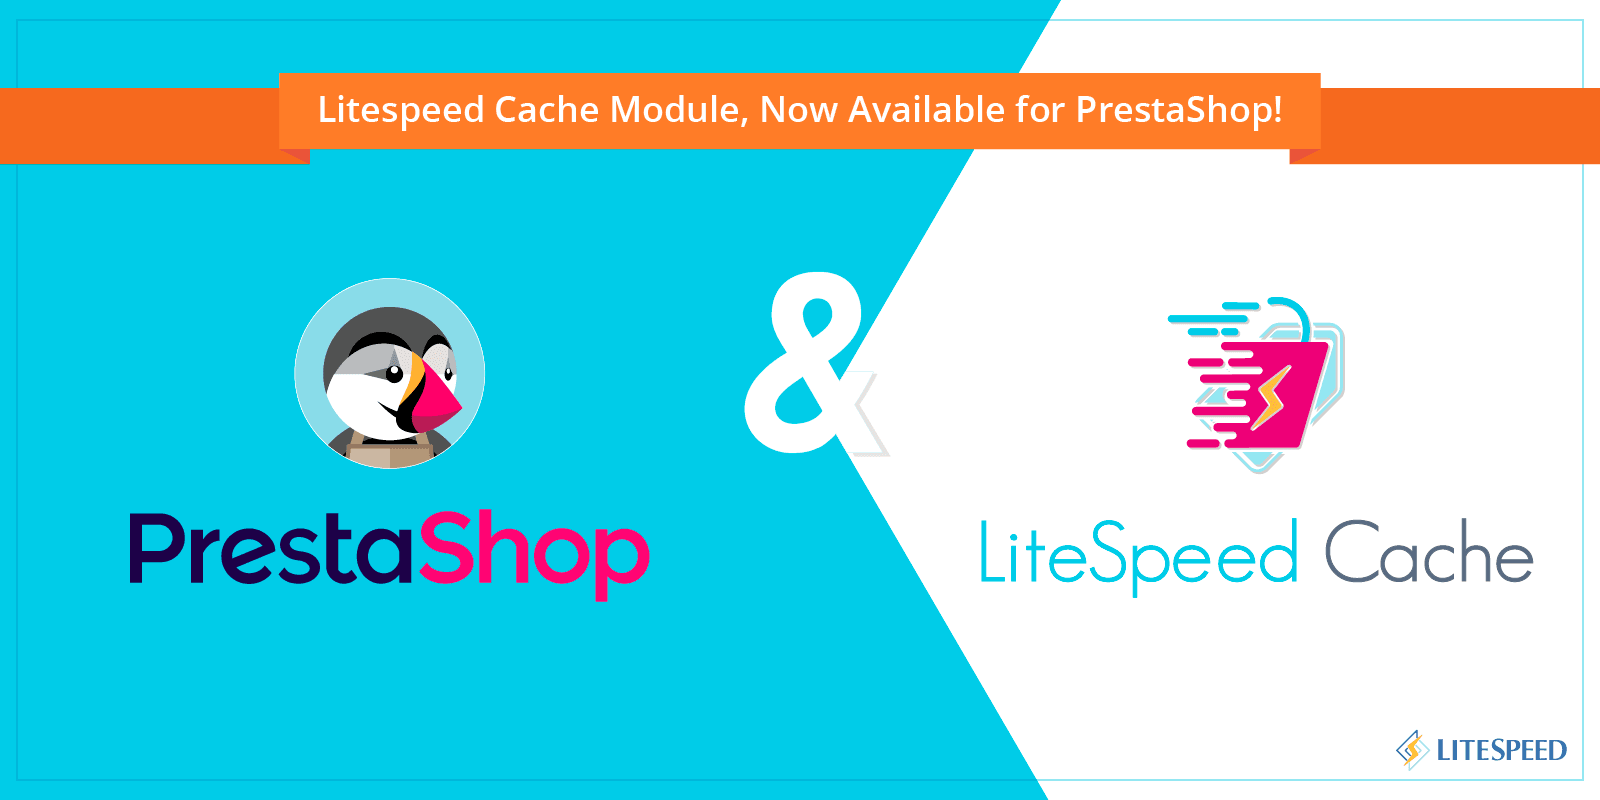 LiteSpeed Cache Module, Now Available for PrestaShop!